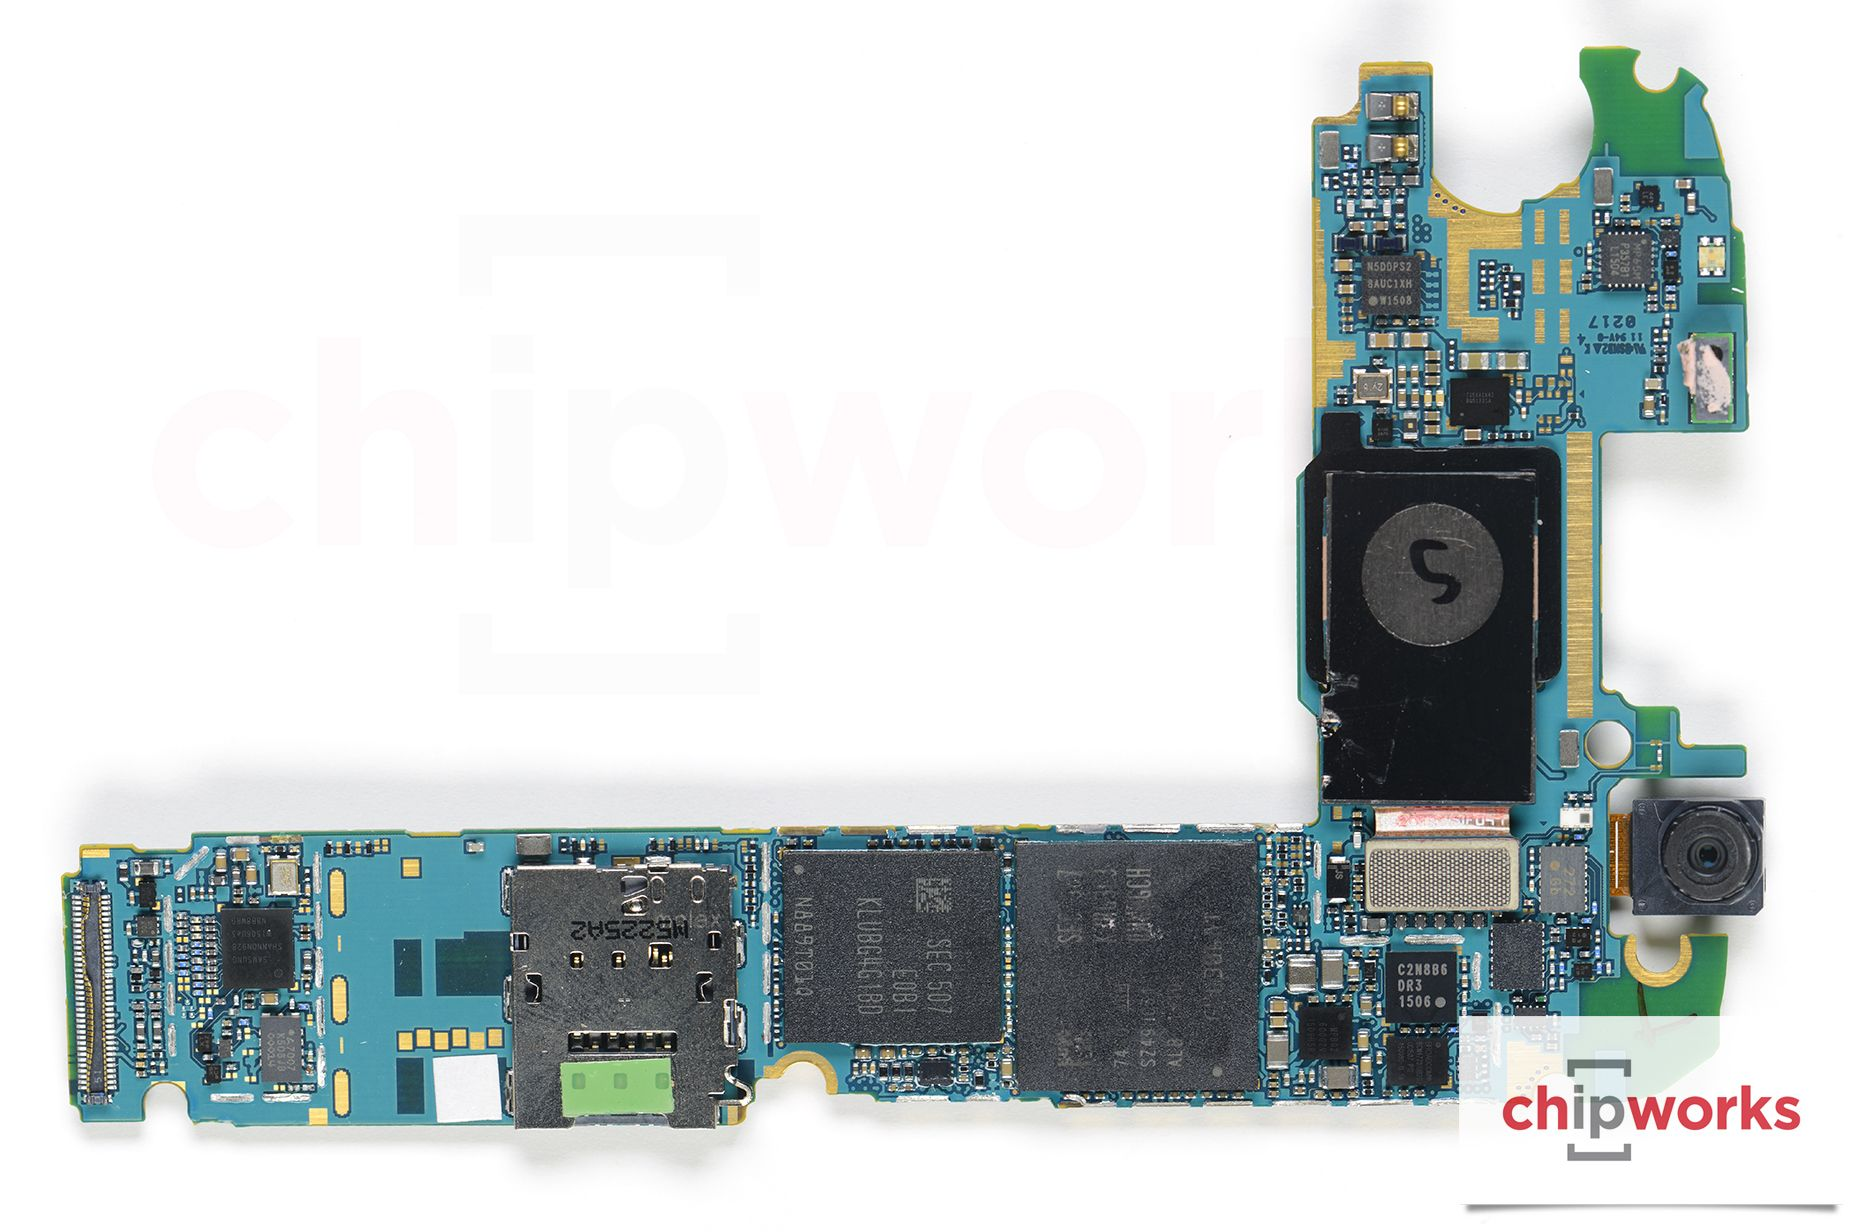 Galaxy S6 PCB with SoC+DRAM and modem+NAND in view. The UFS module sits on  top of the modem. (Image source: Chipworks)